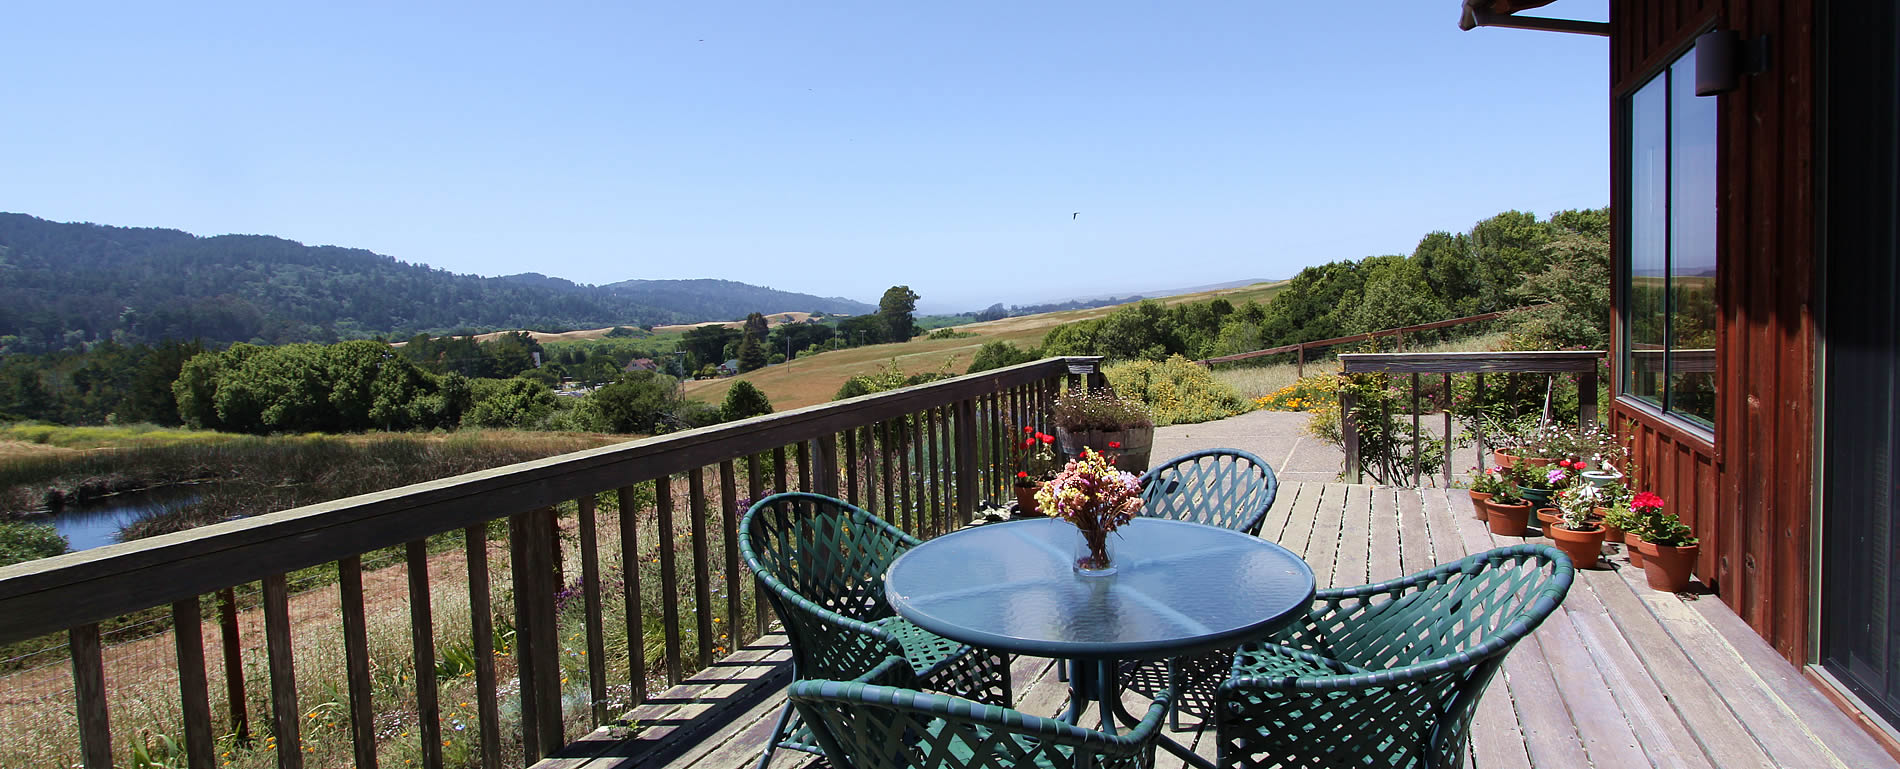 point reyes lodging - bed and breakfast inns, small hotels, luxury inns